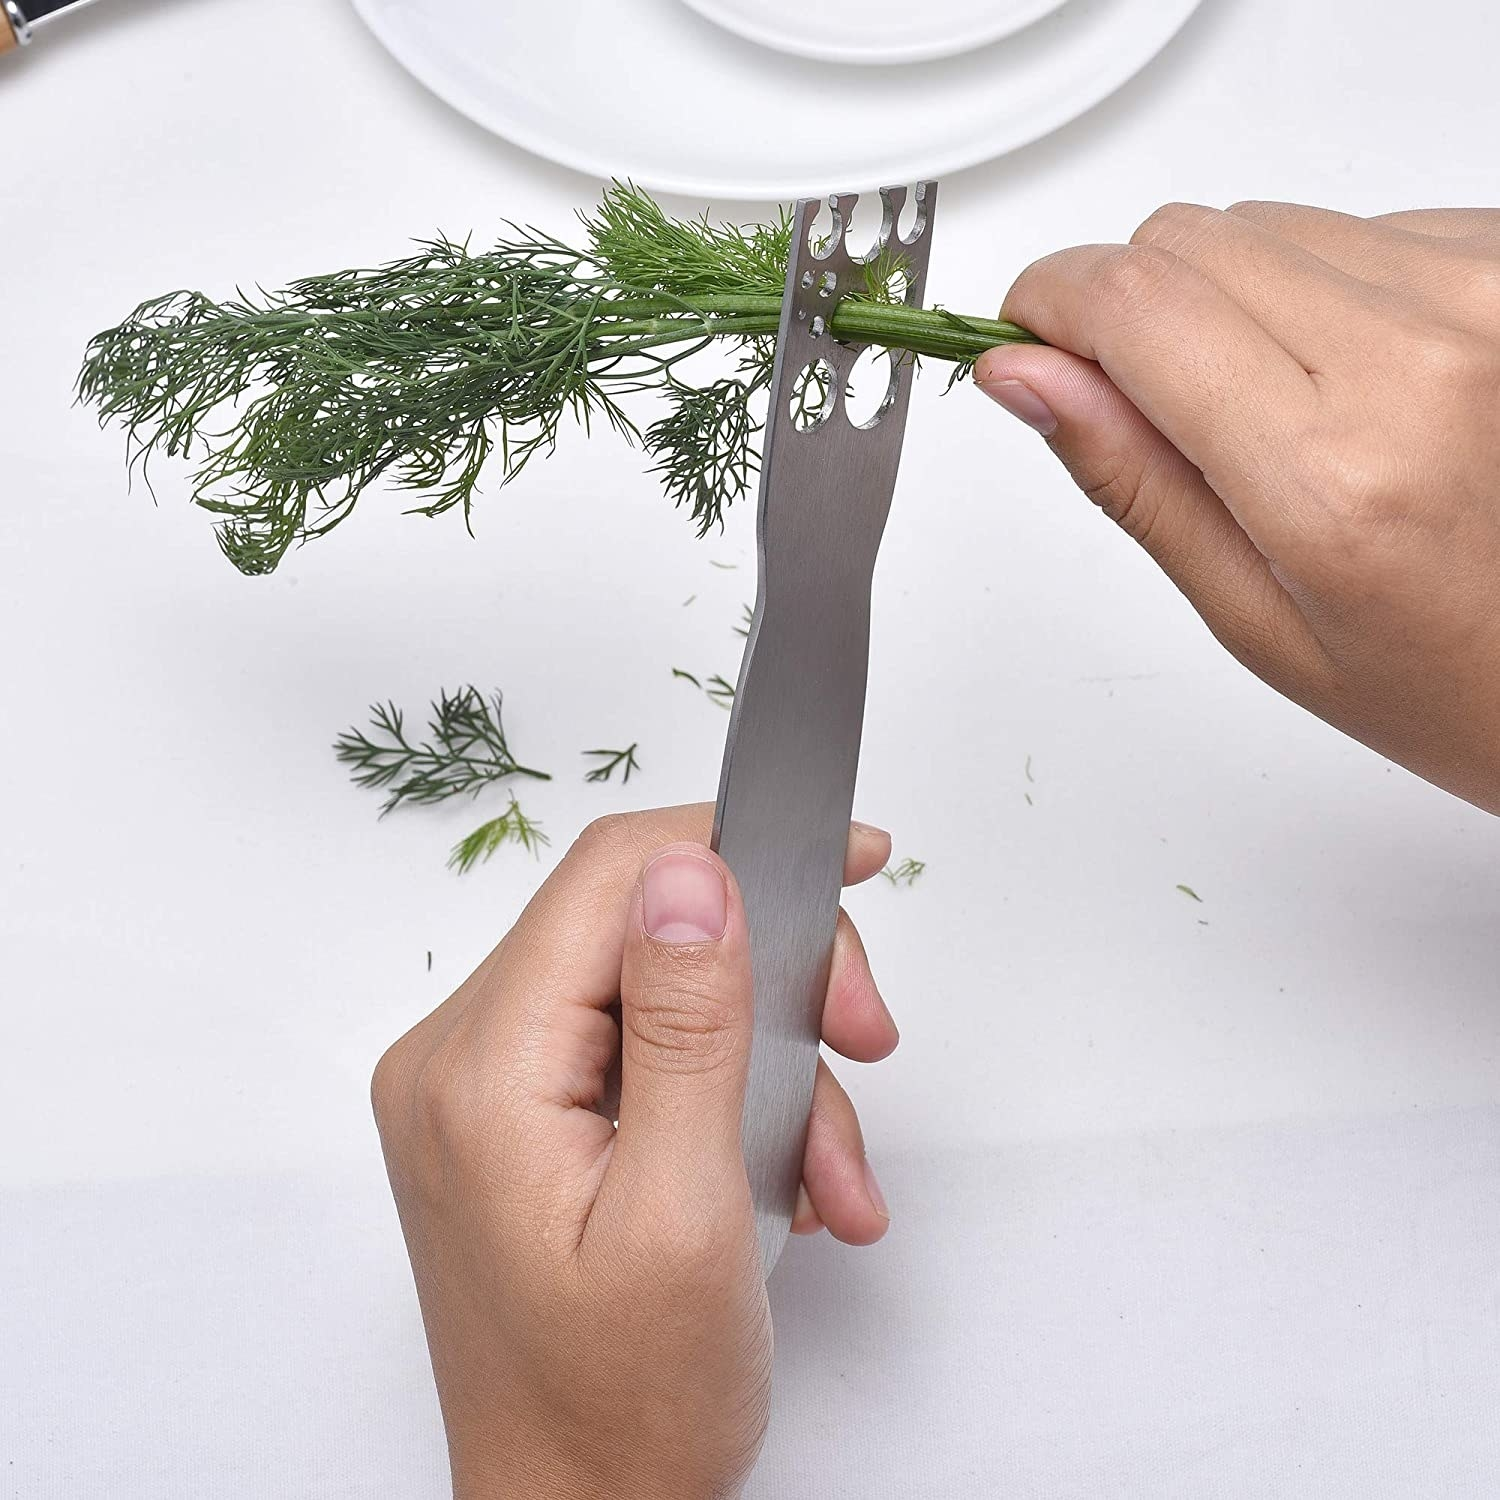 A person using the tool to strip dill off its stem